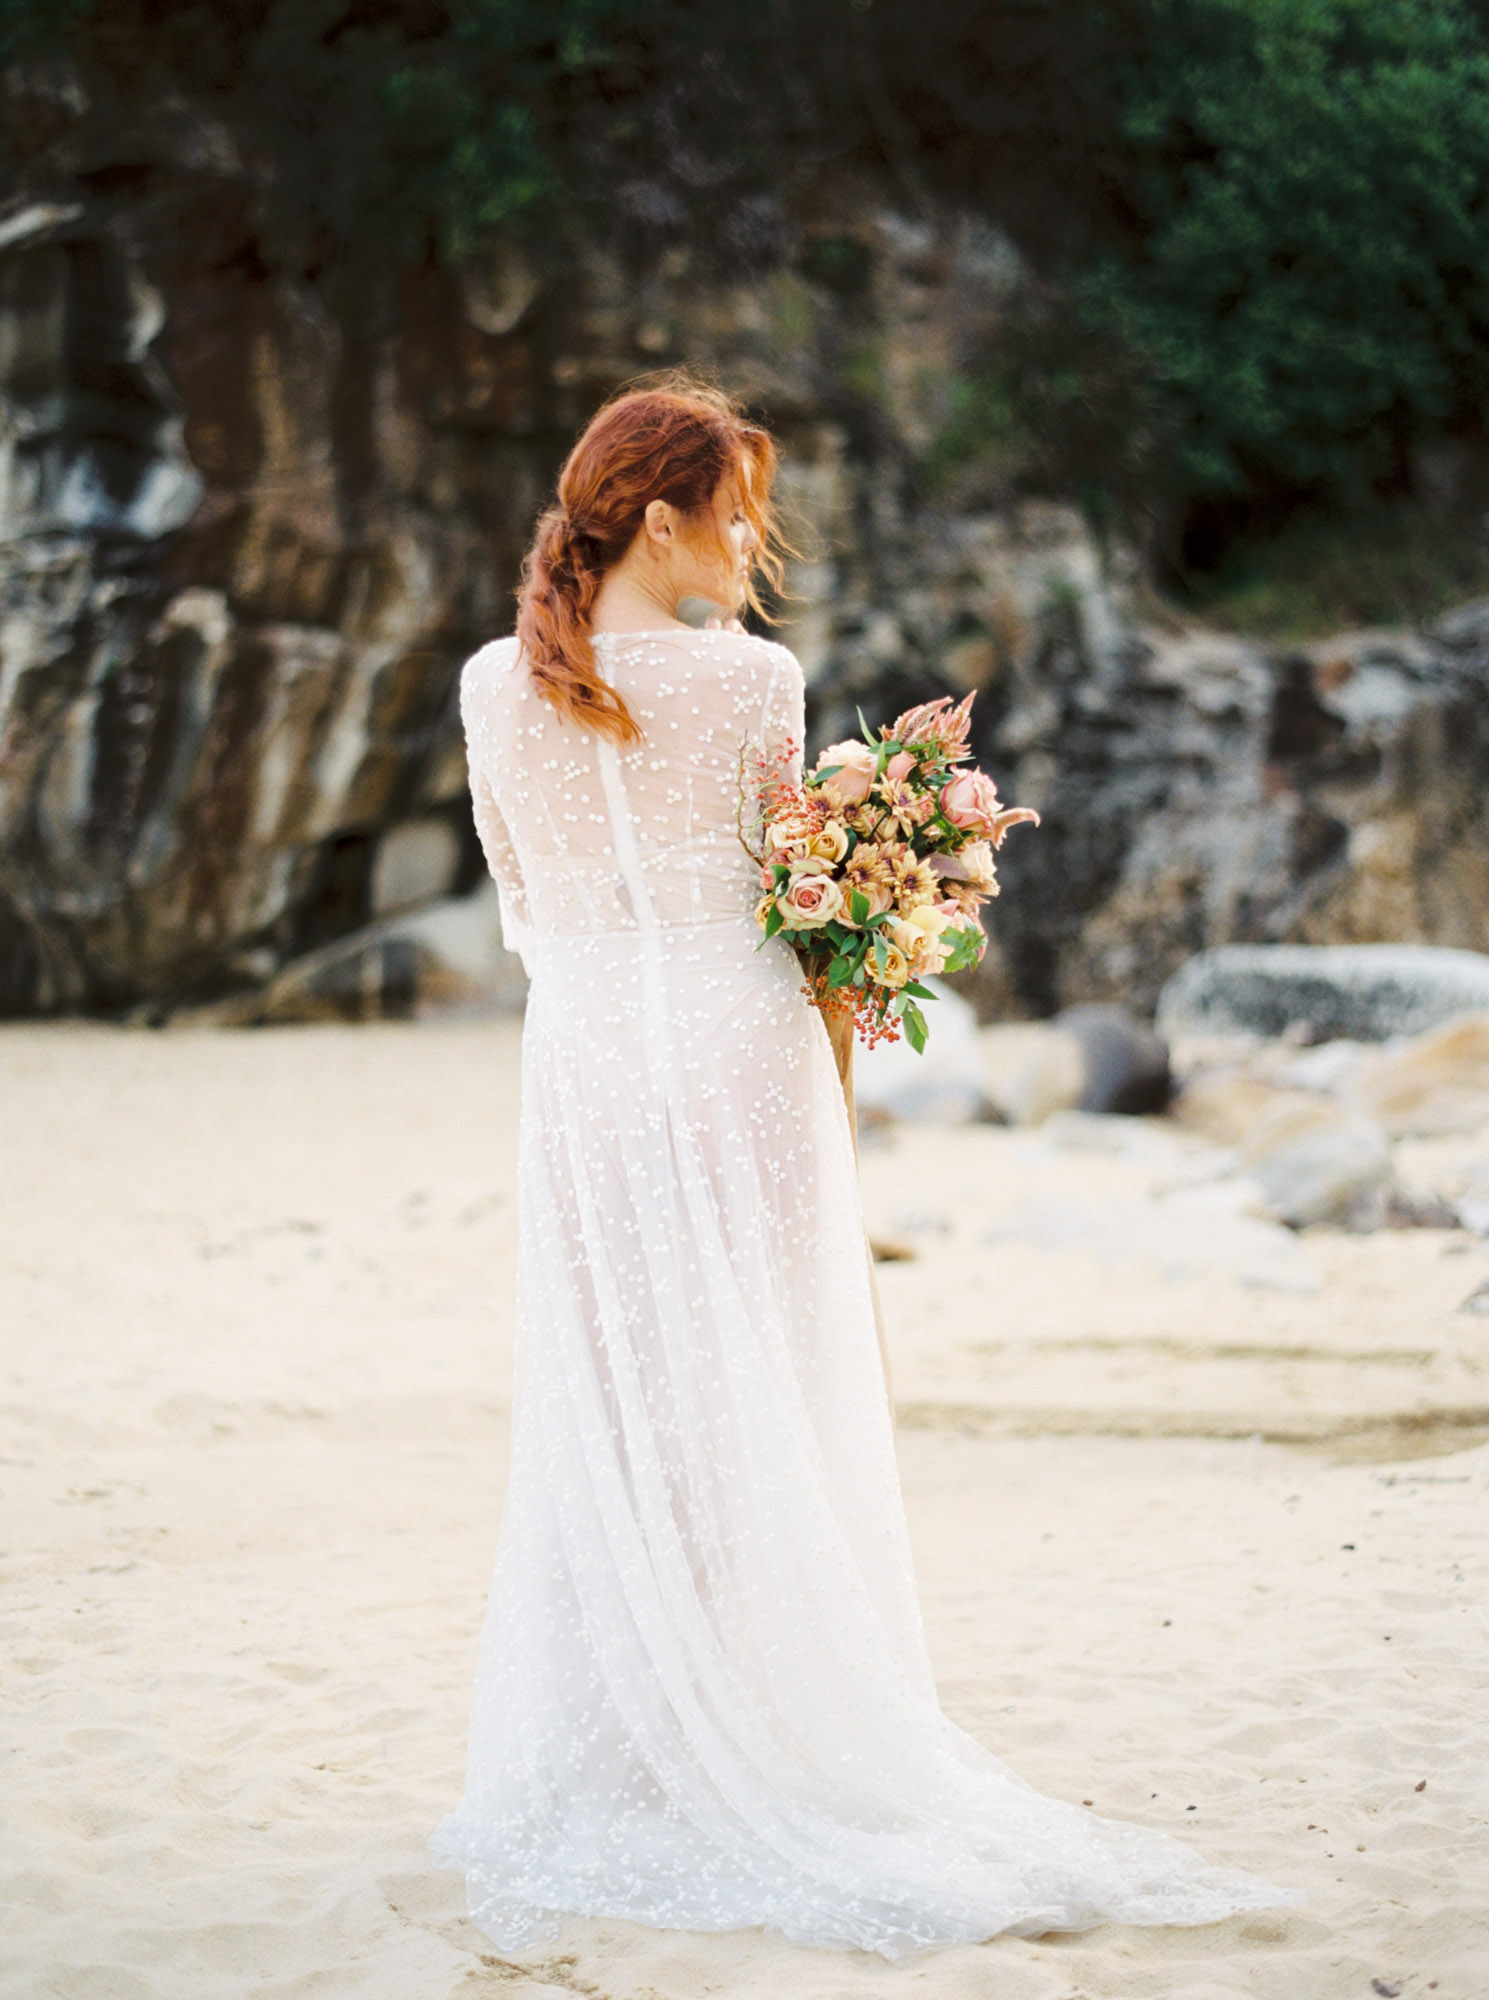 00032- Fine Art Film Newcastle NSW Wedding Photographer Sheri McMahon.jpg